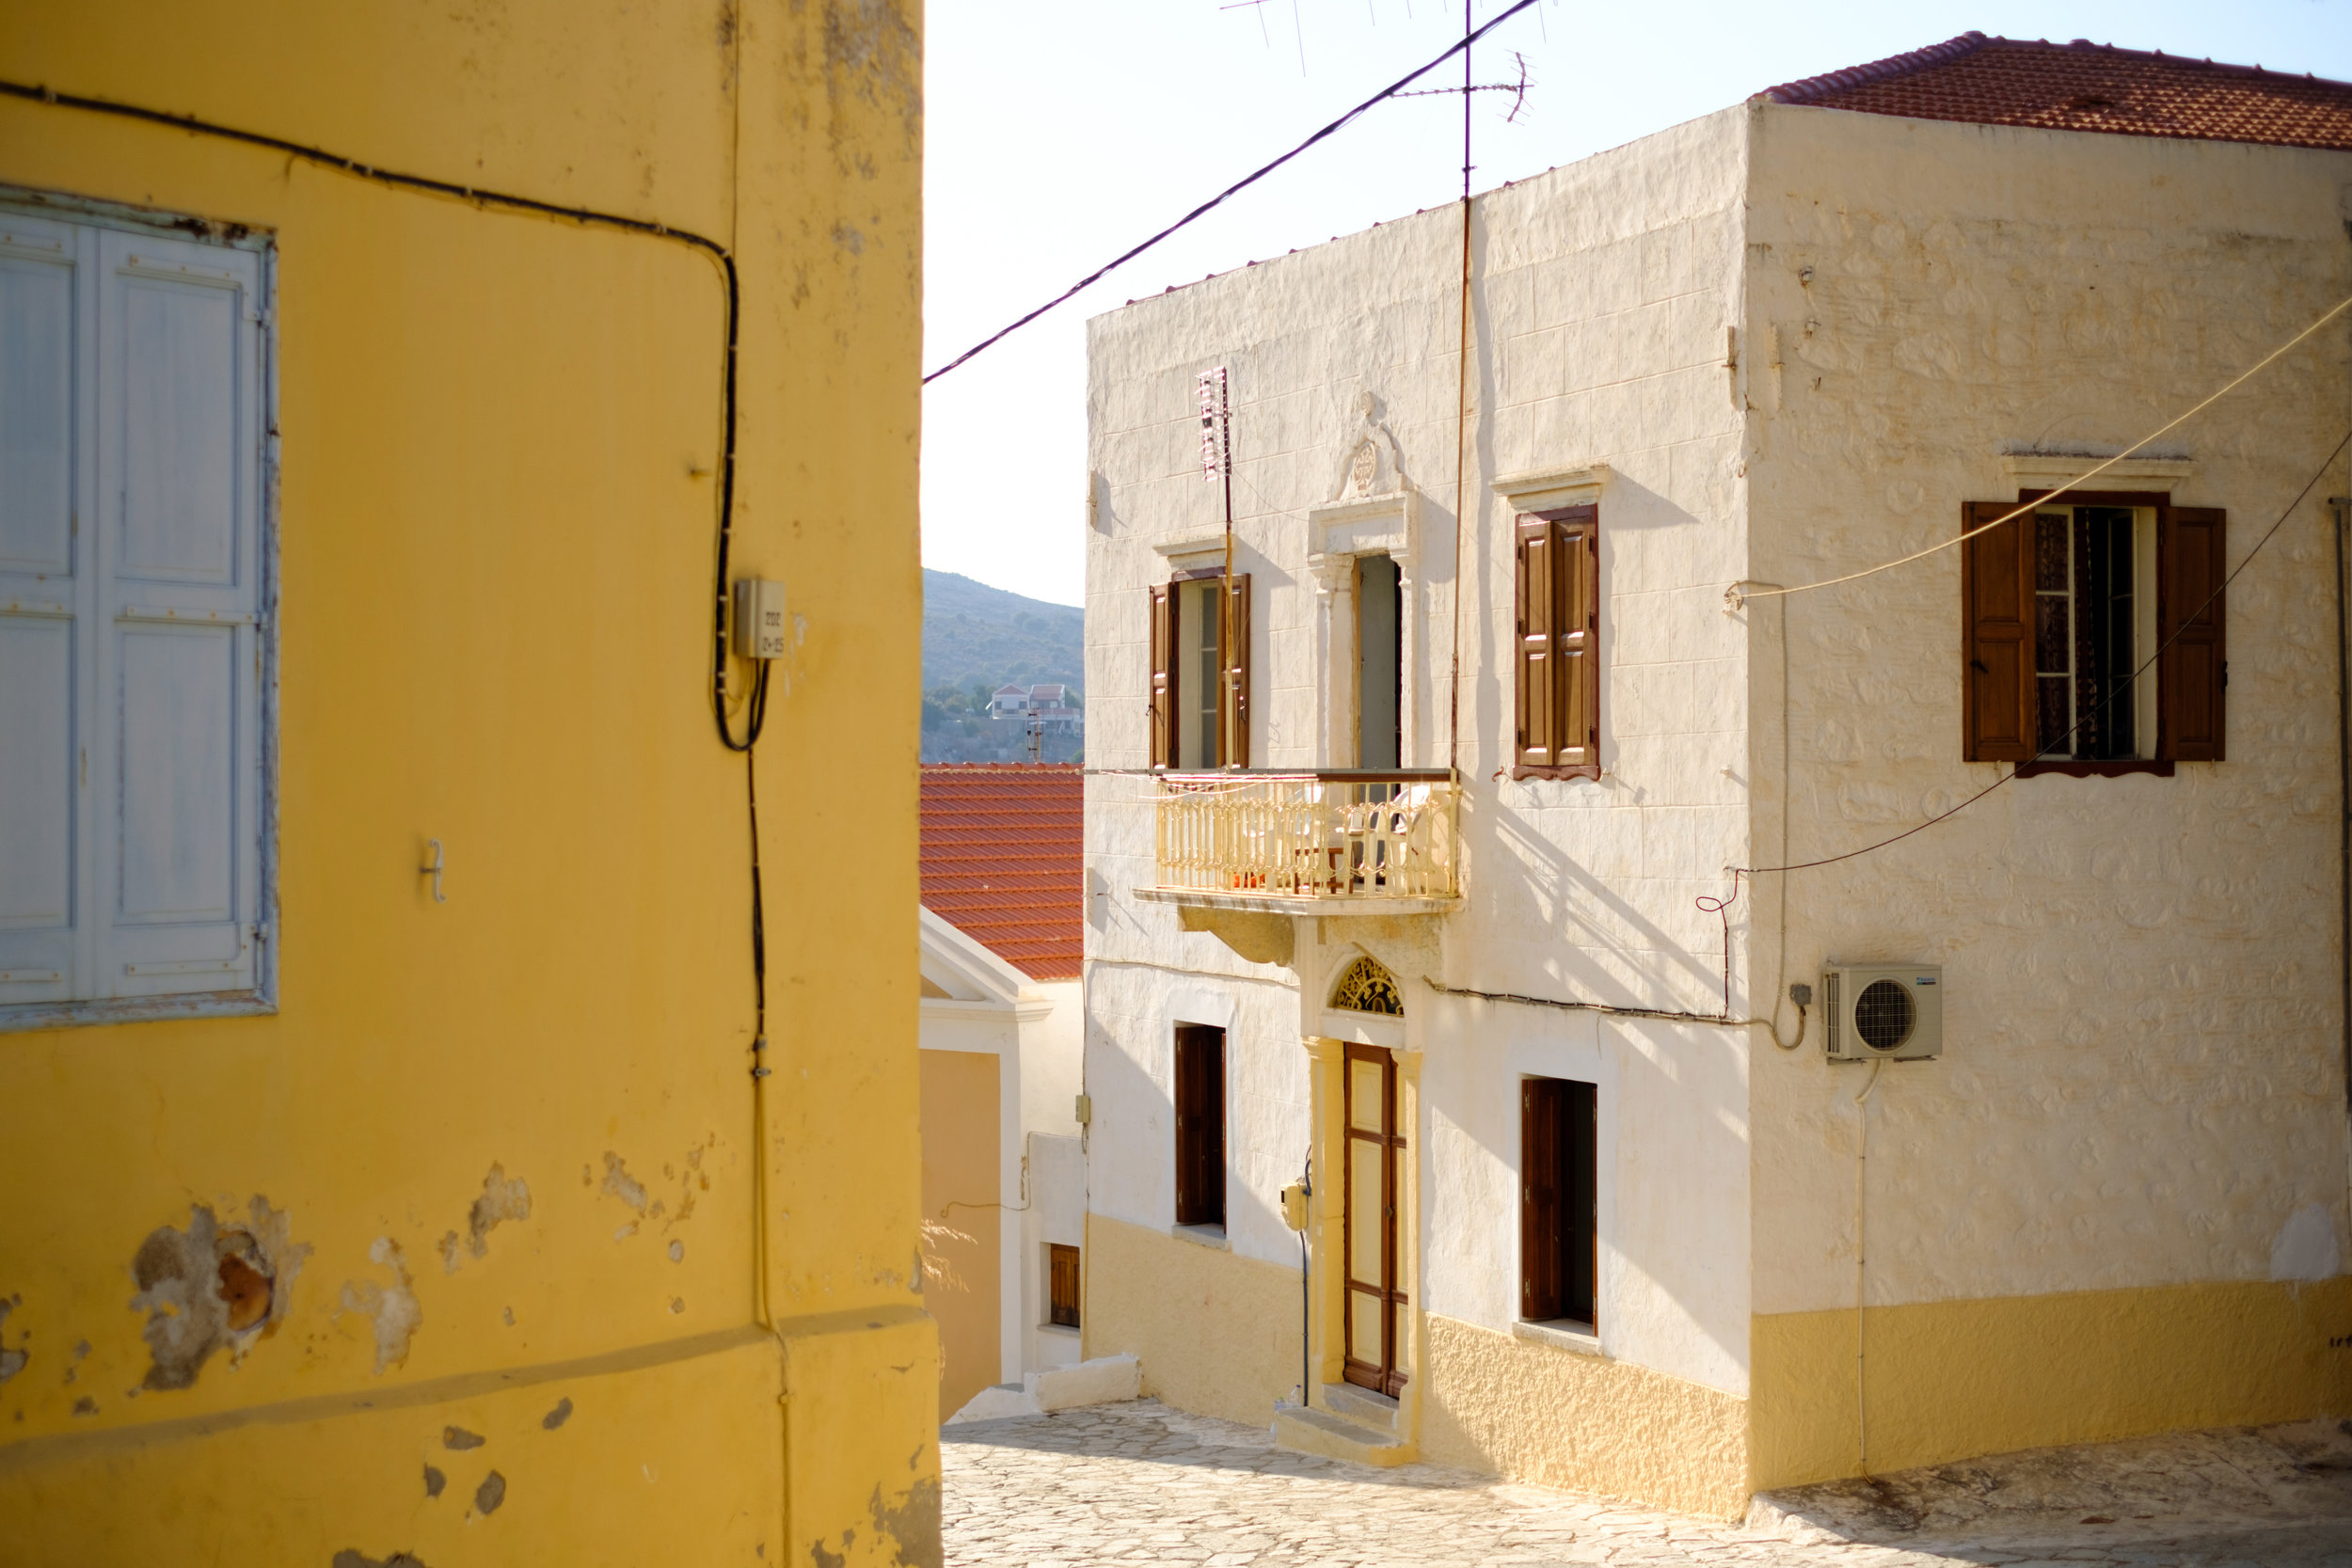 A yellow house with a balcony on the island of Symi in Greece